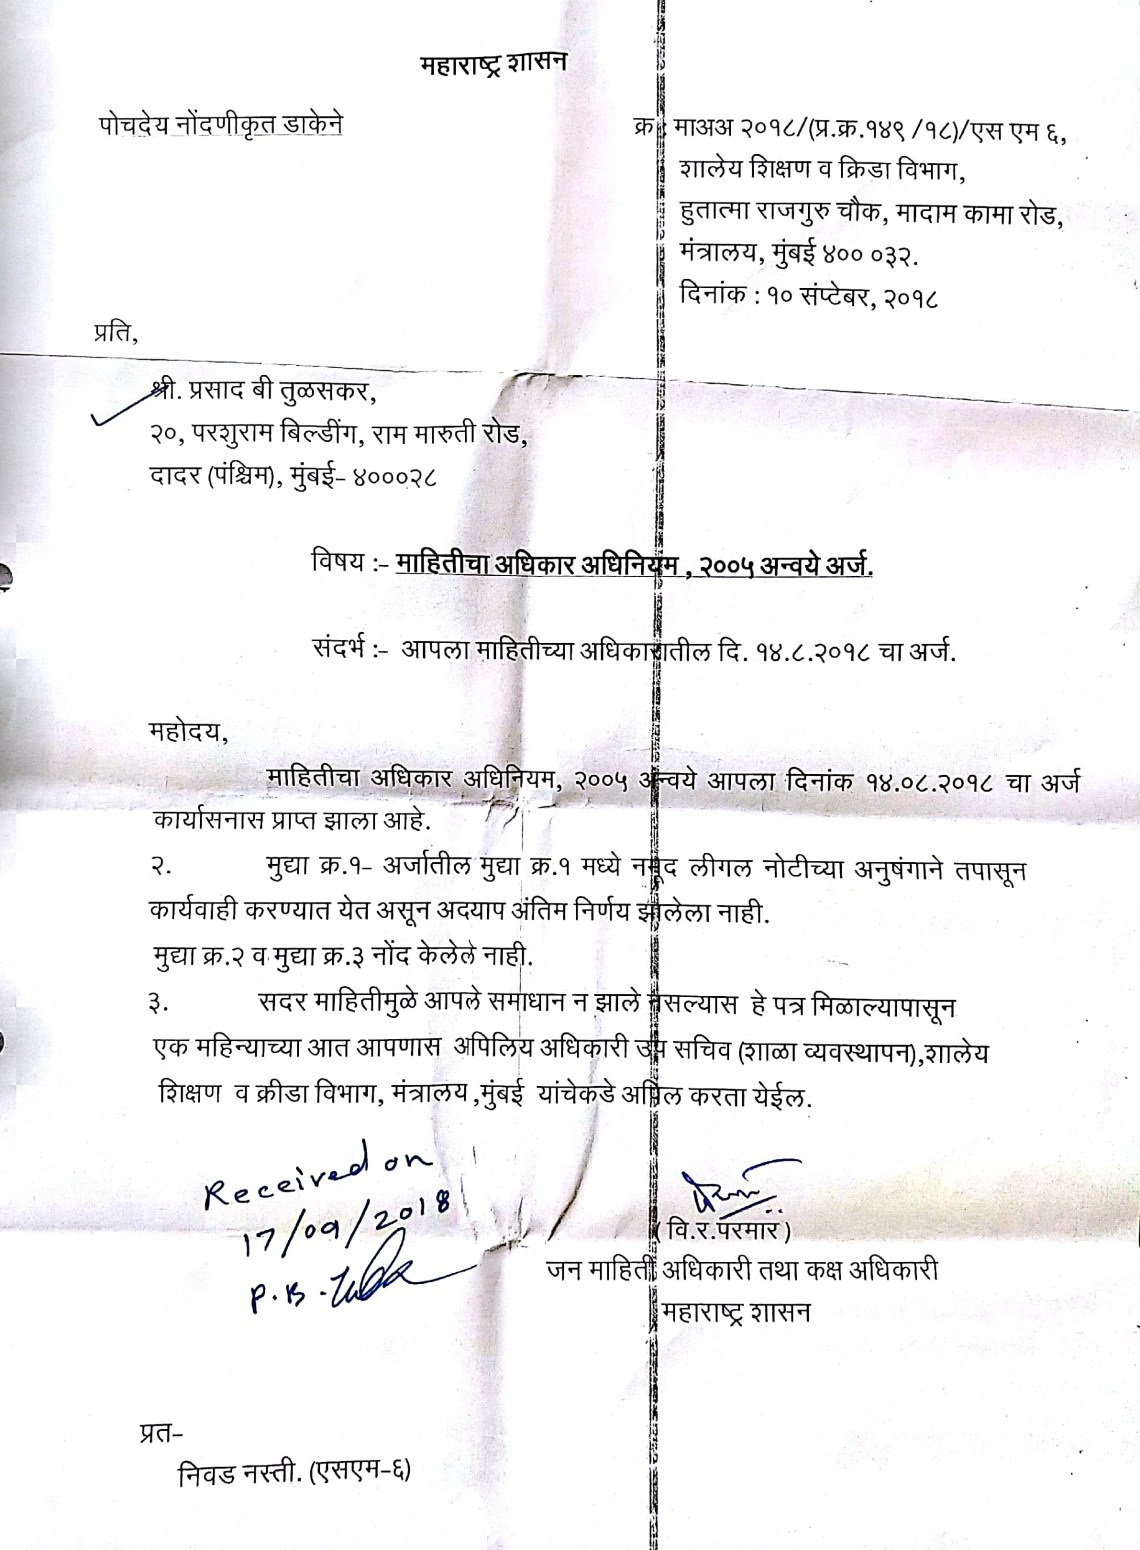 Second 'Copy Paste' RTI Reply Received By Mr. Prasad Tulaskar Dtd.10.09.2018 from Education Secretary Office repeating no decision is made & his complaint status is pending